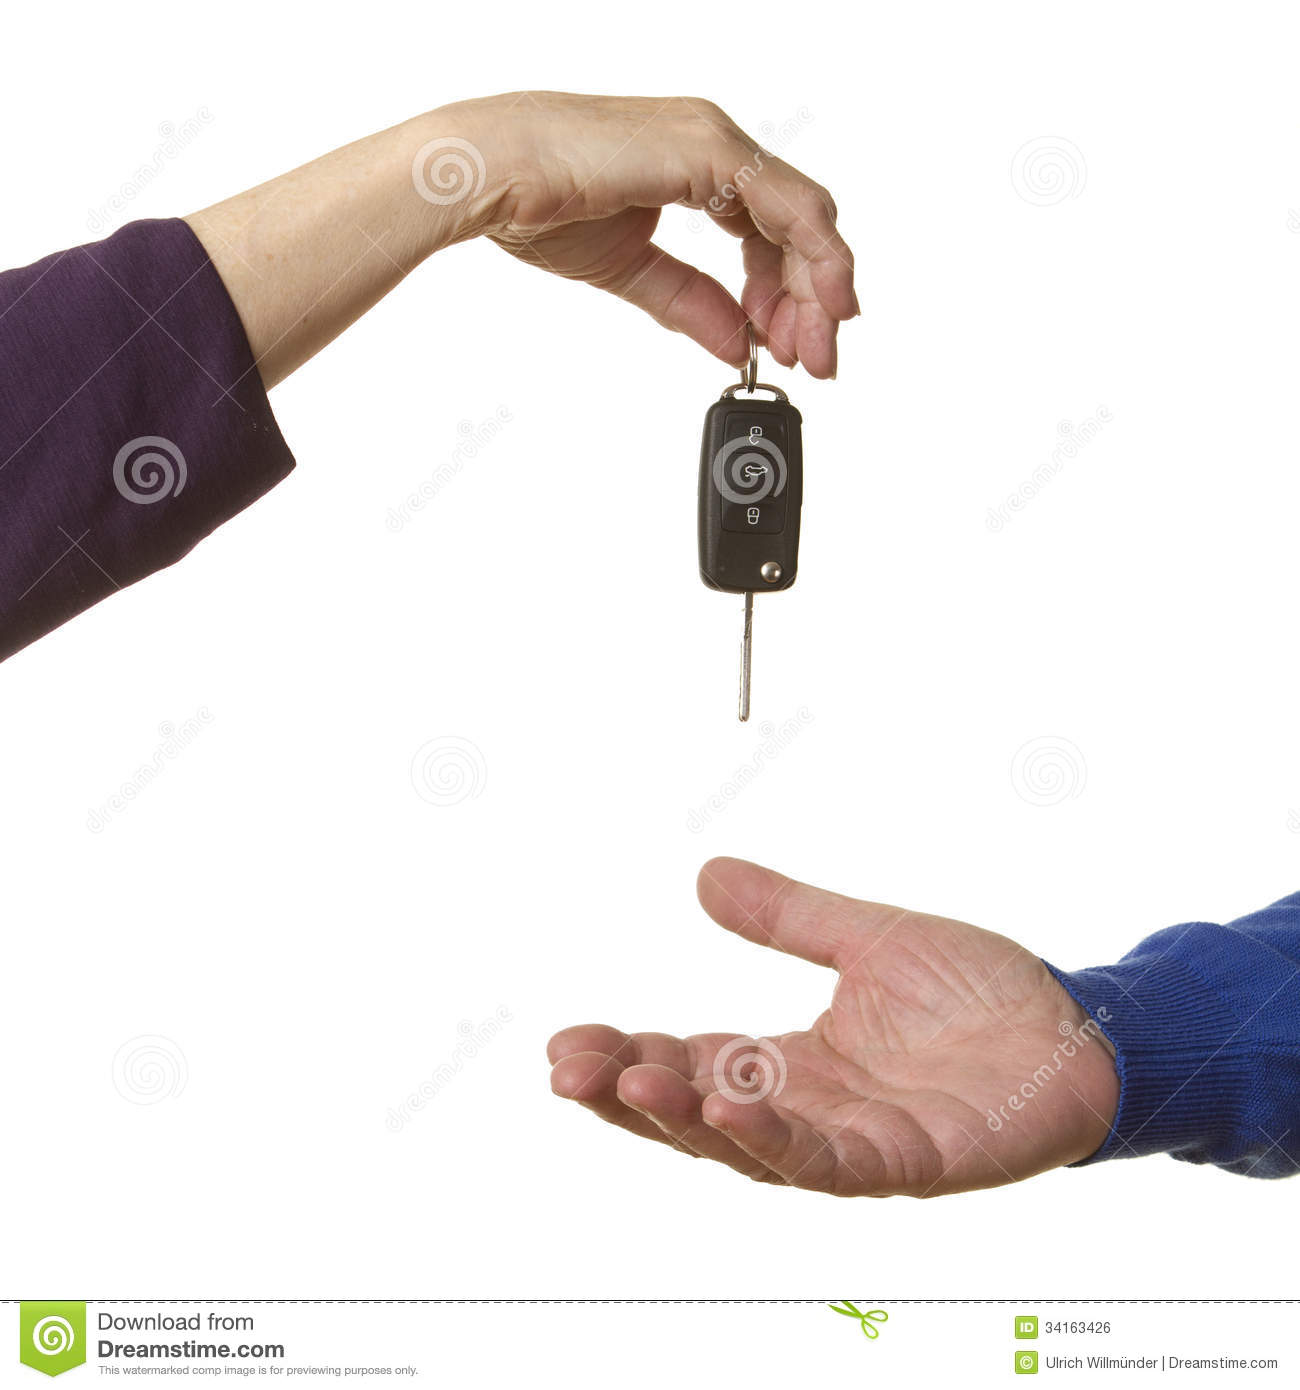 how to sell car to senior